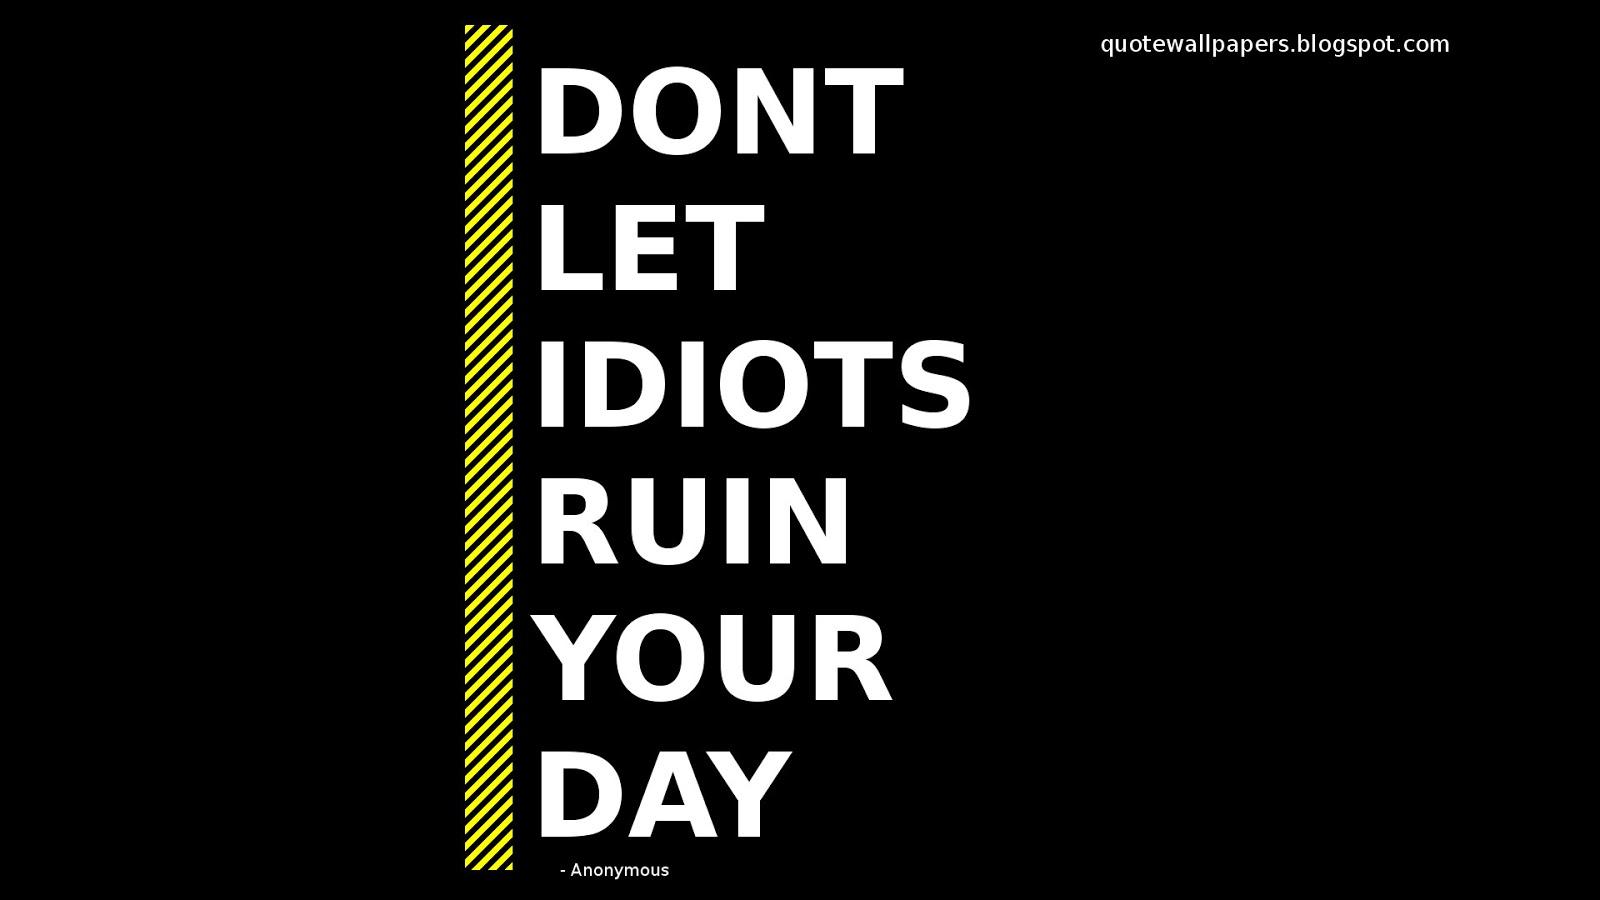 Superb Dont Let Idiots Ruin Your Day   Attitude Quotes